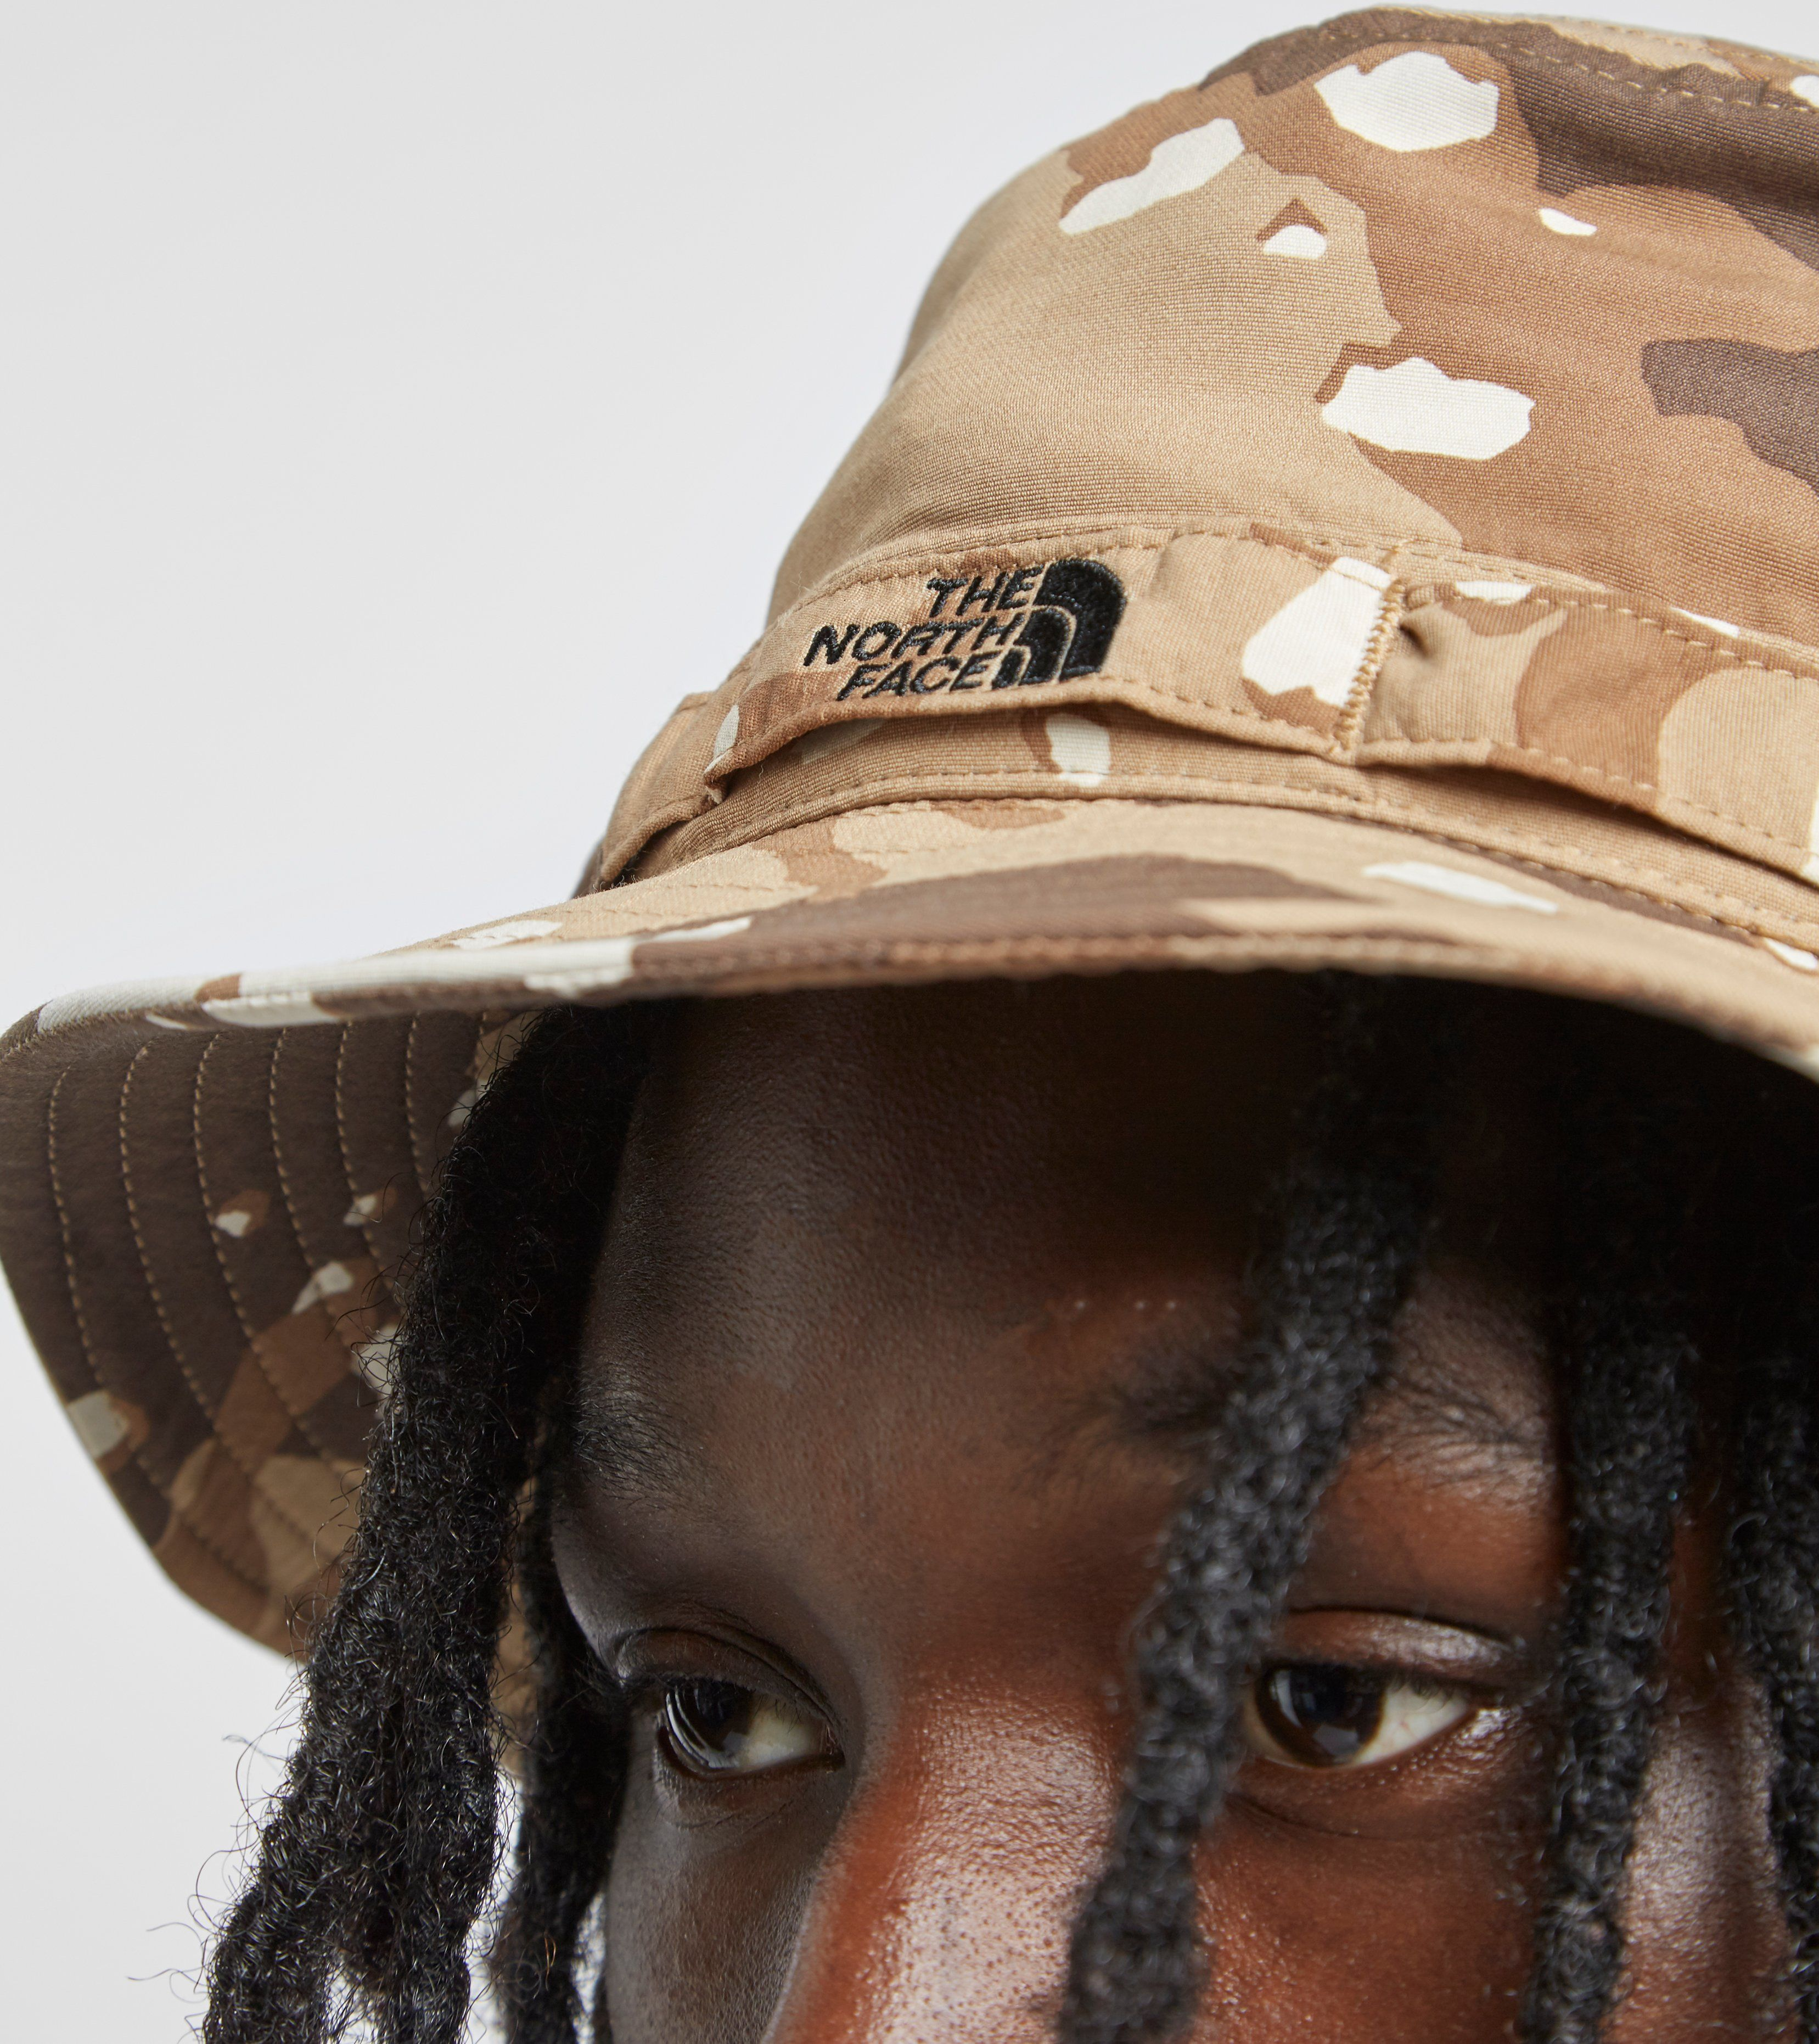 The North Face Classic Brimmer Bucket Hat